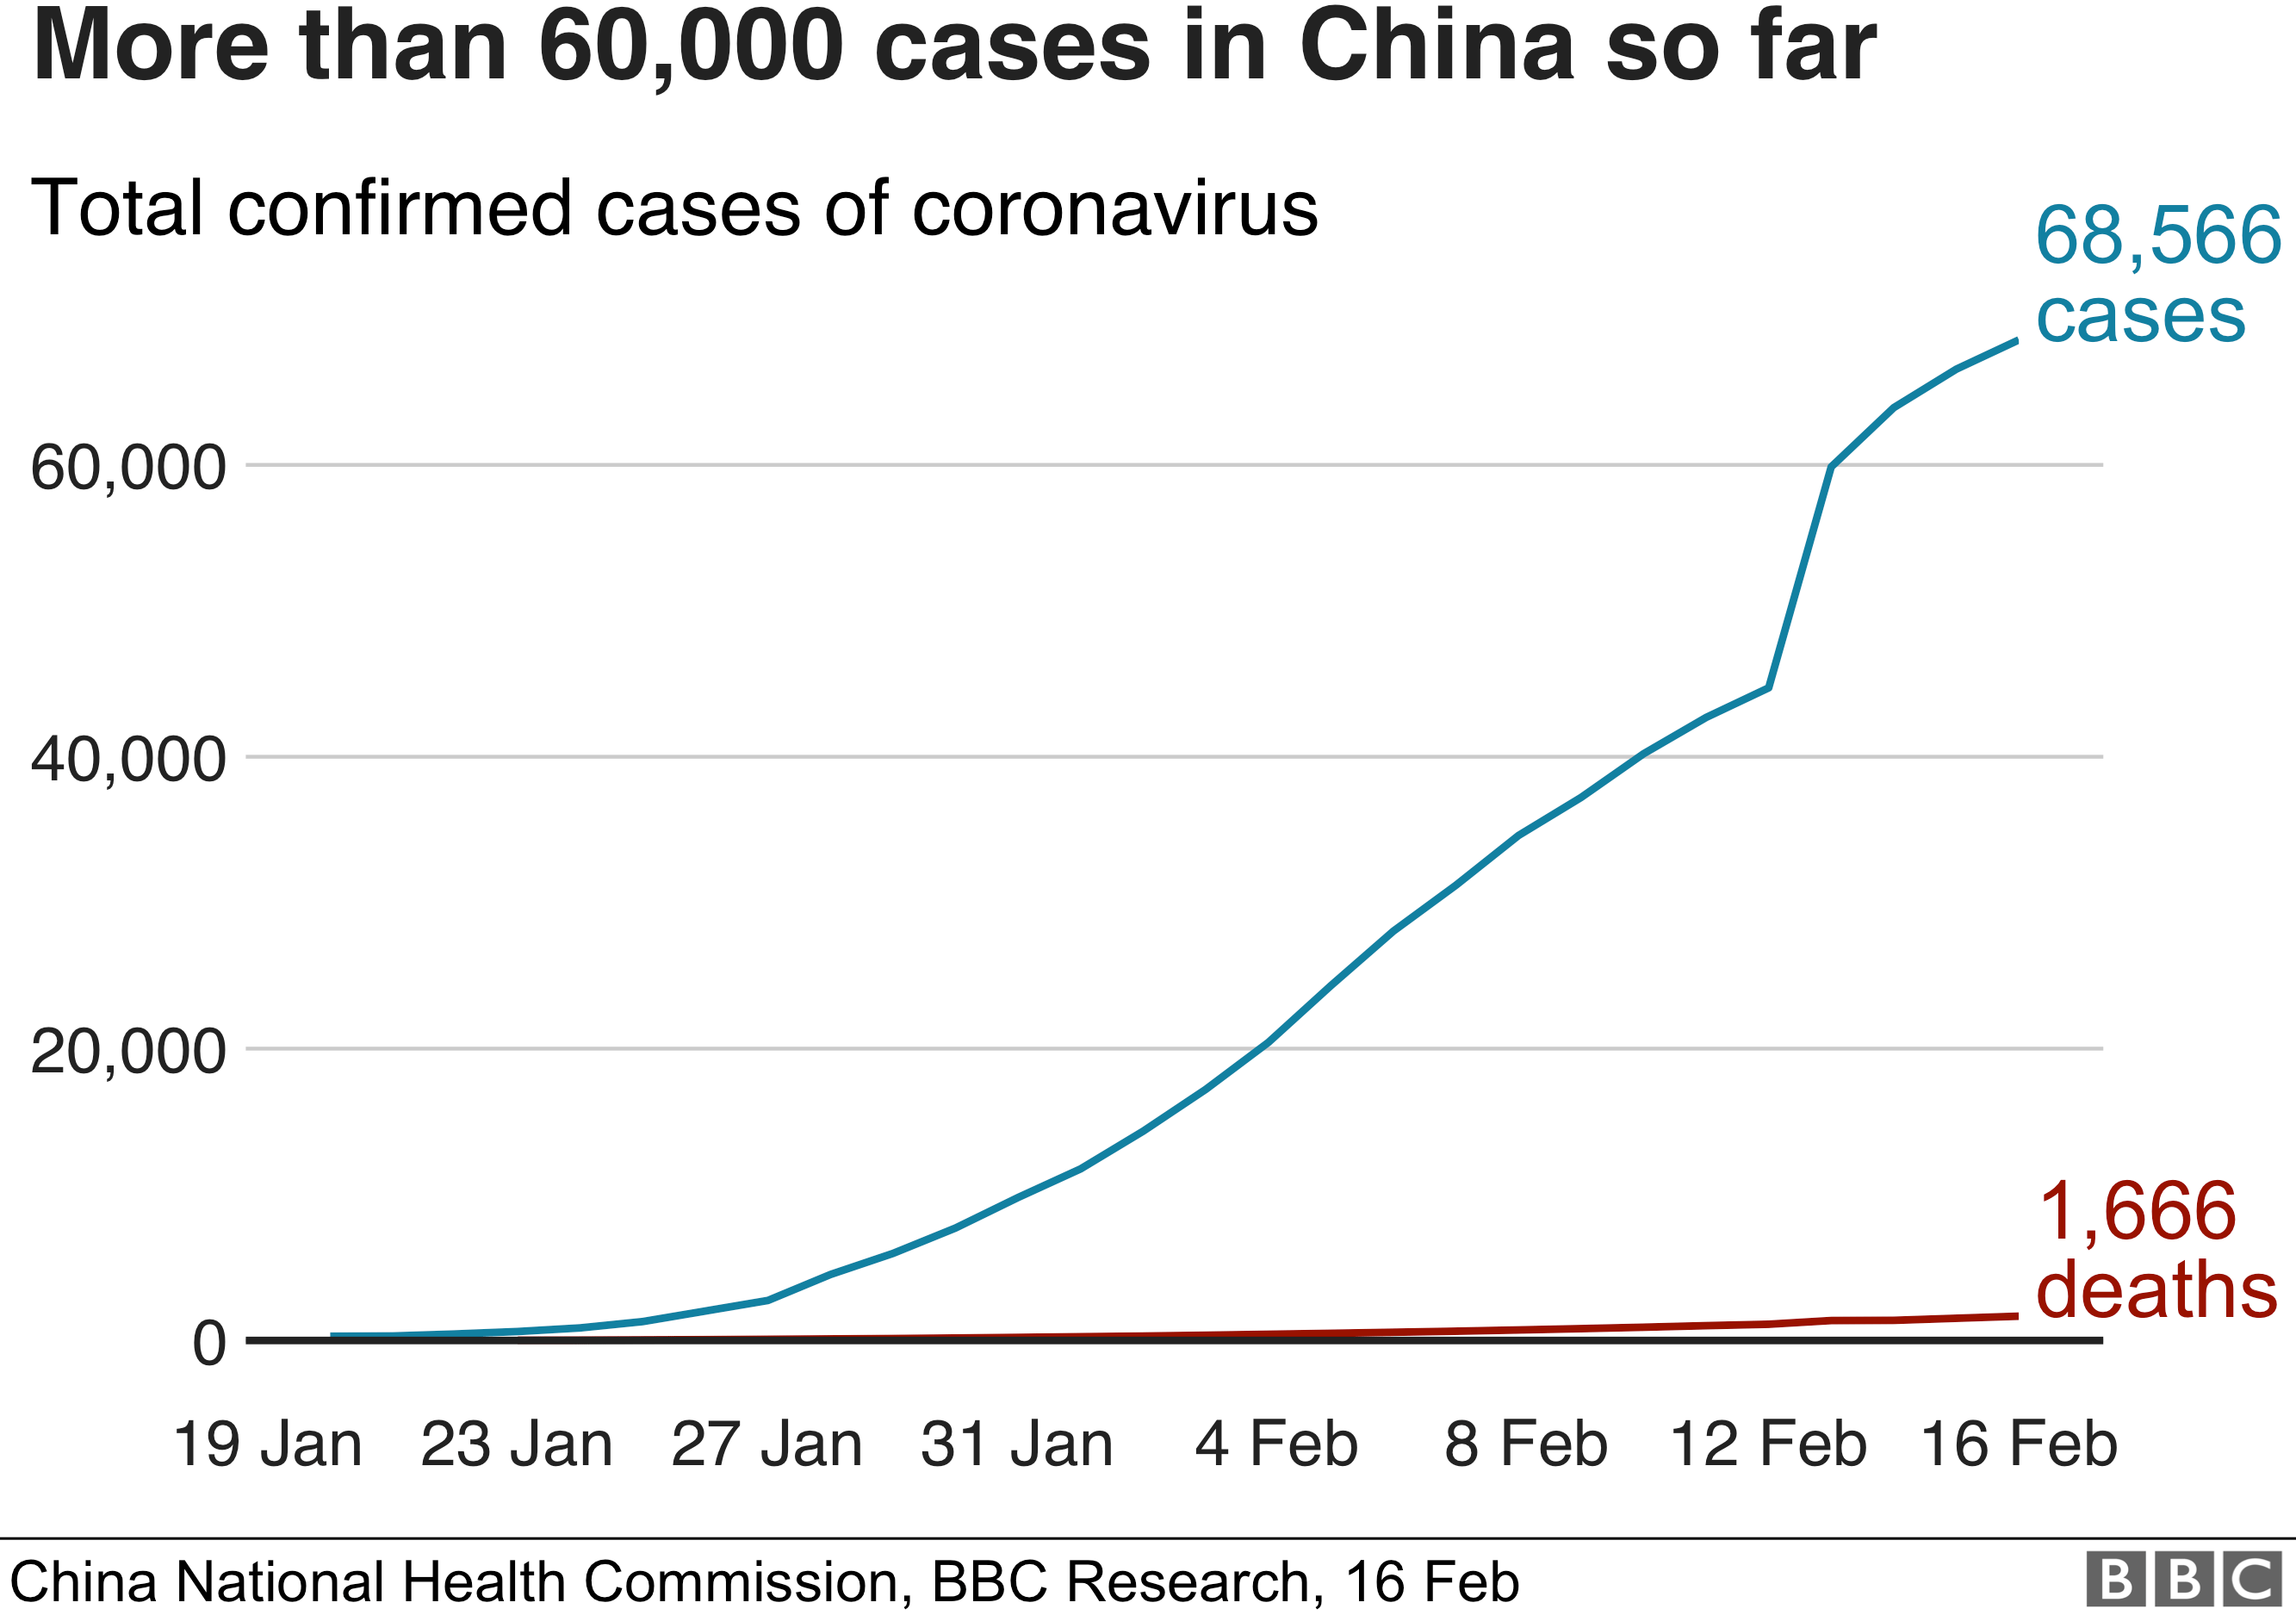 BBC chart showing total number of coronavirus cases in China, 16 February 2020